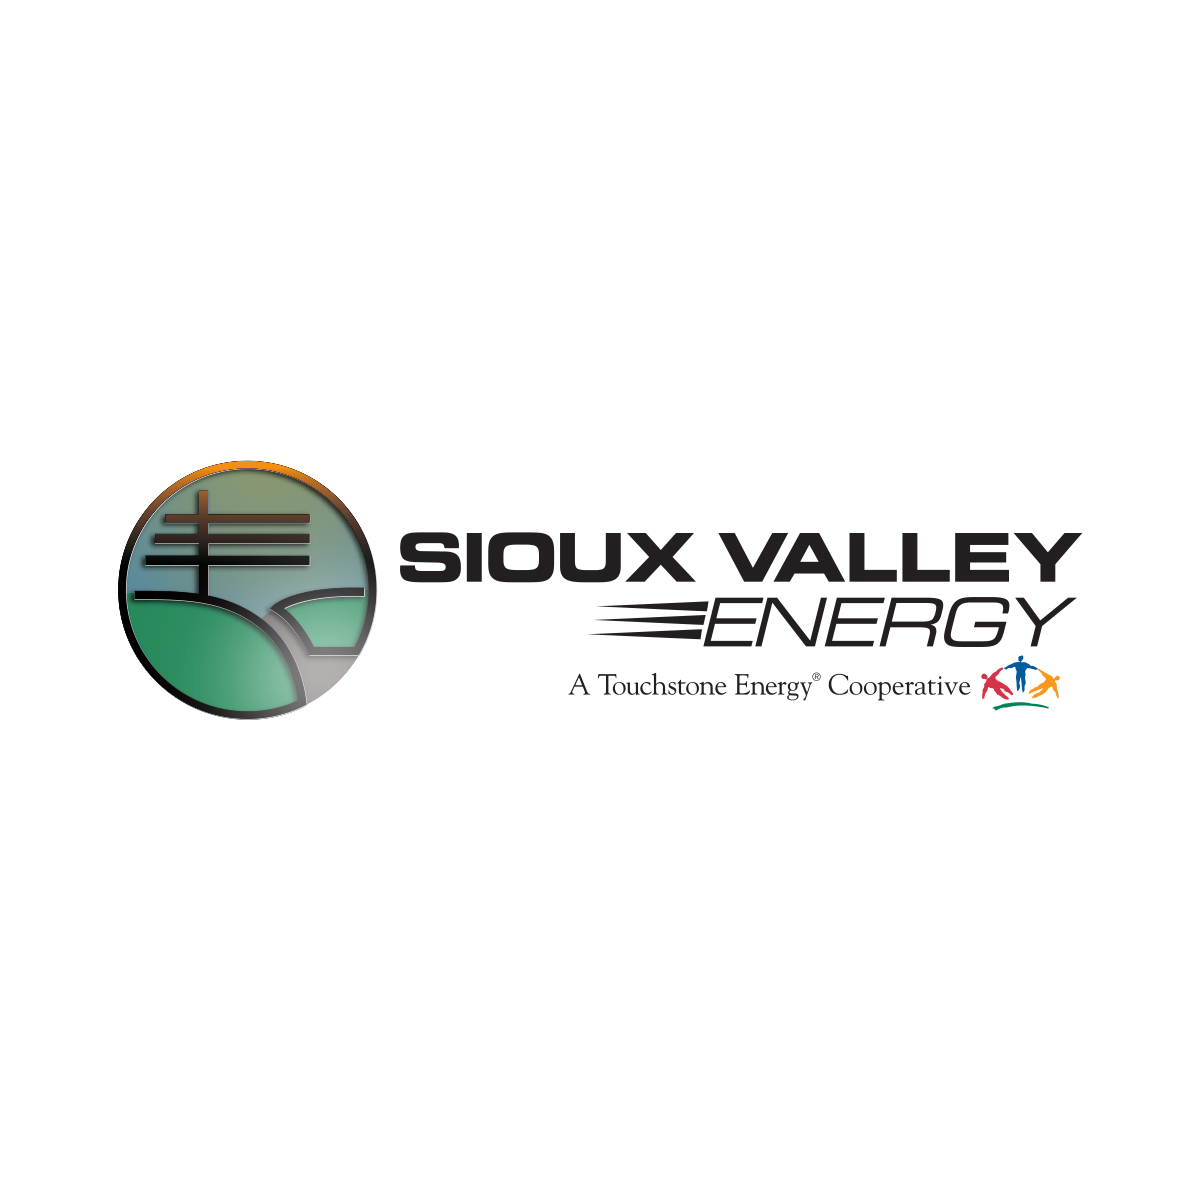 sioux valley energy power outage map Siouxvalleyenergy